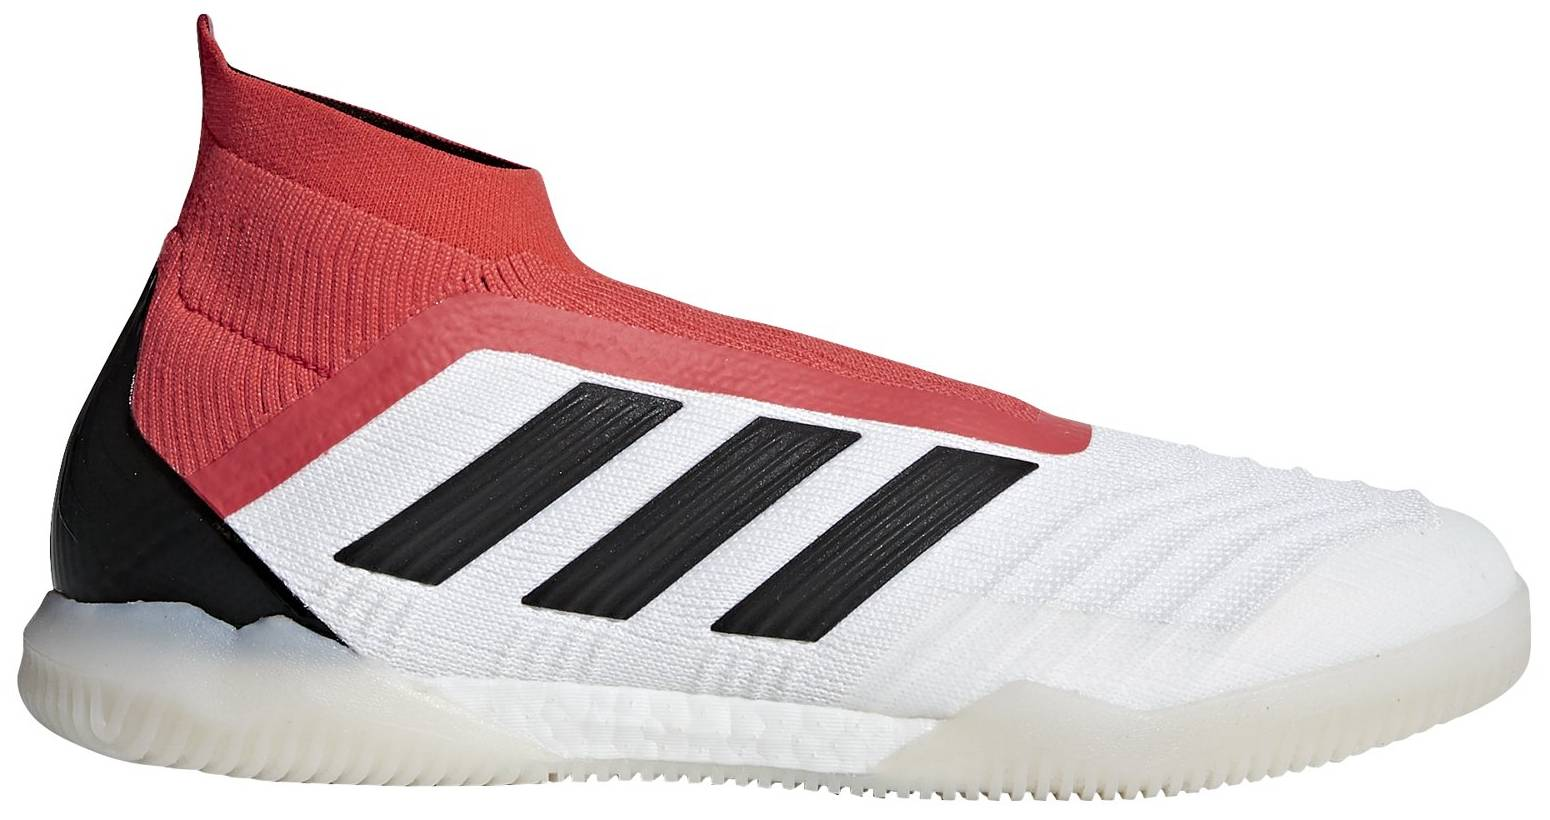 Laceless Indoor Soccer Cleats